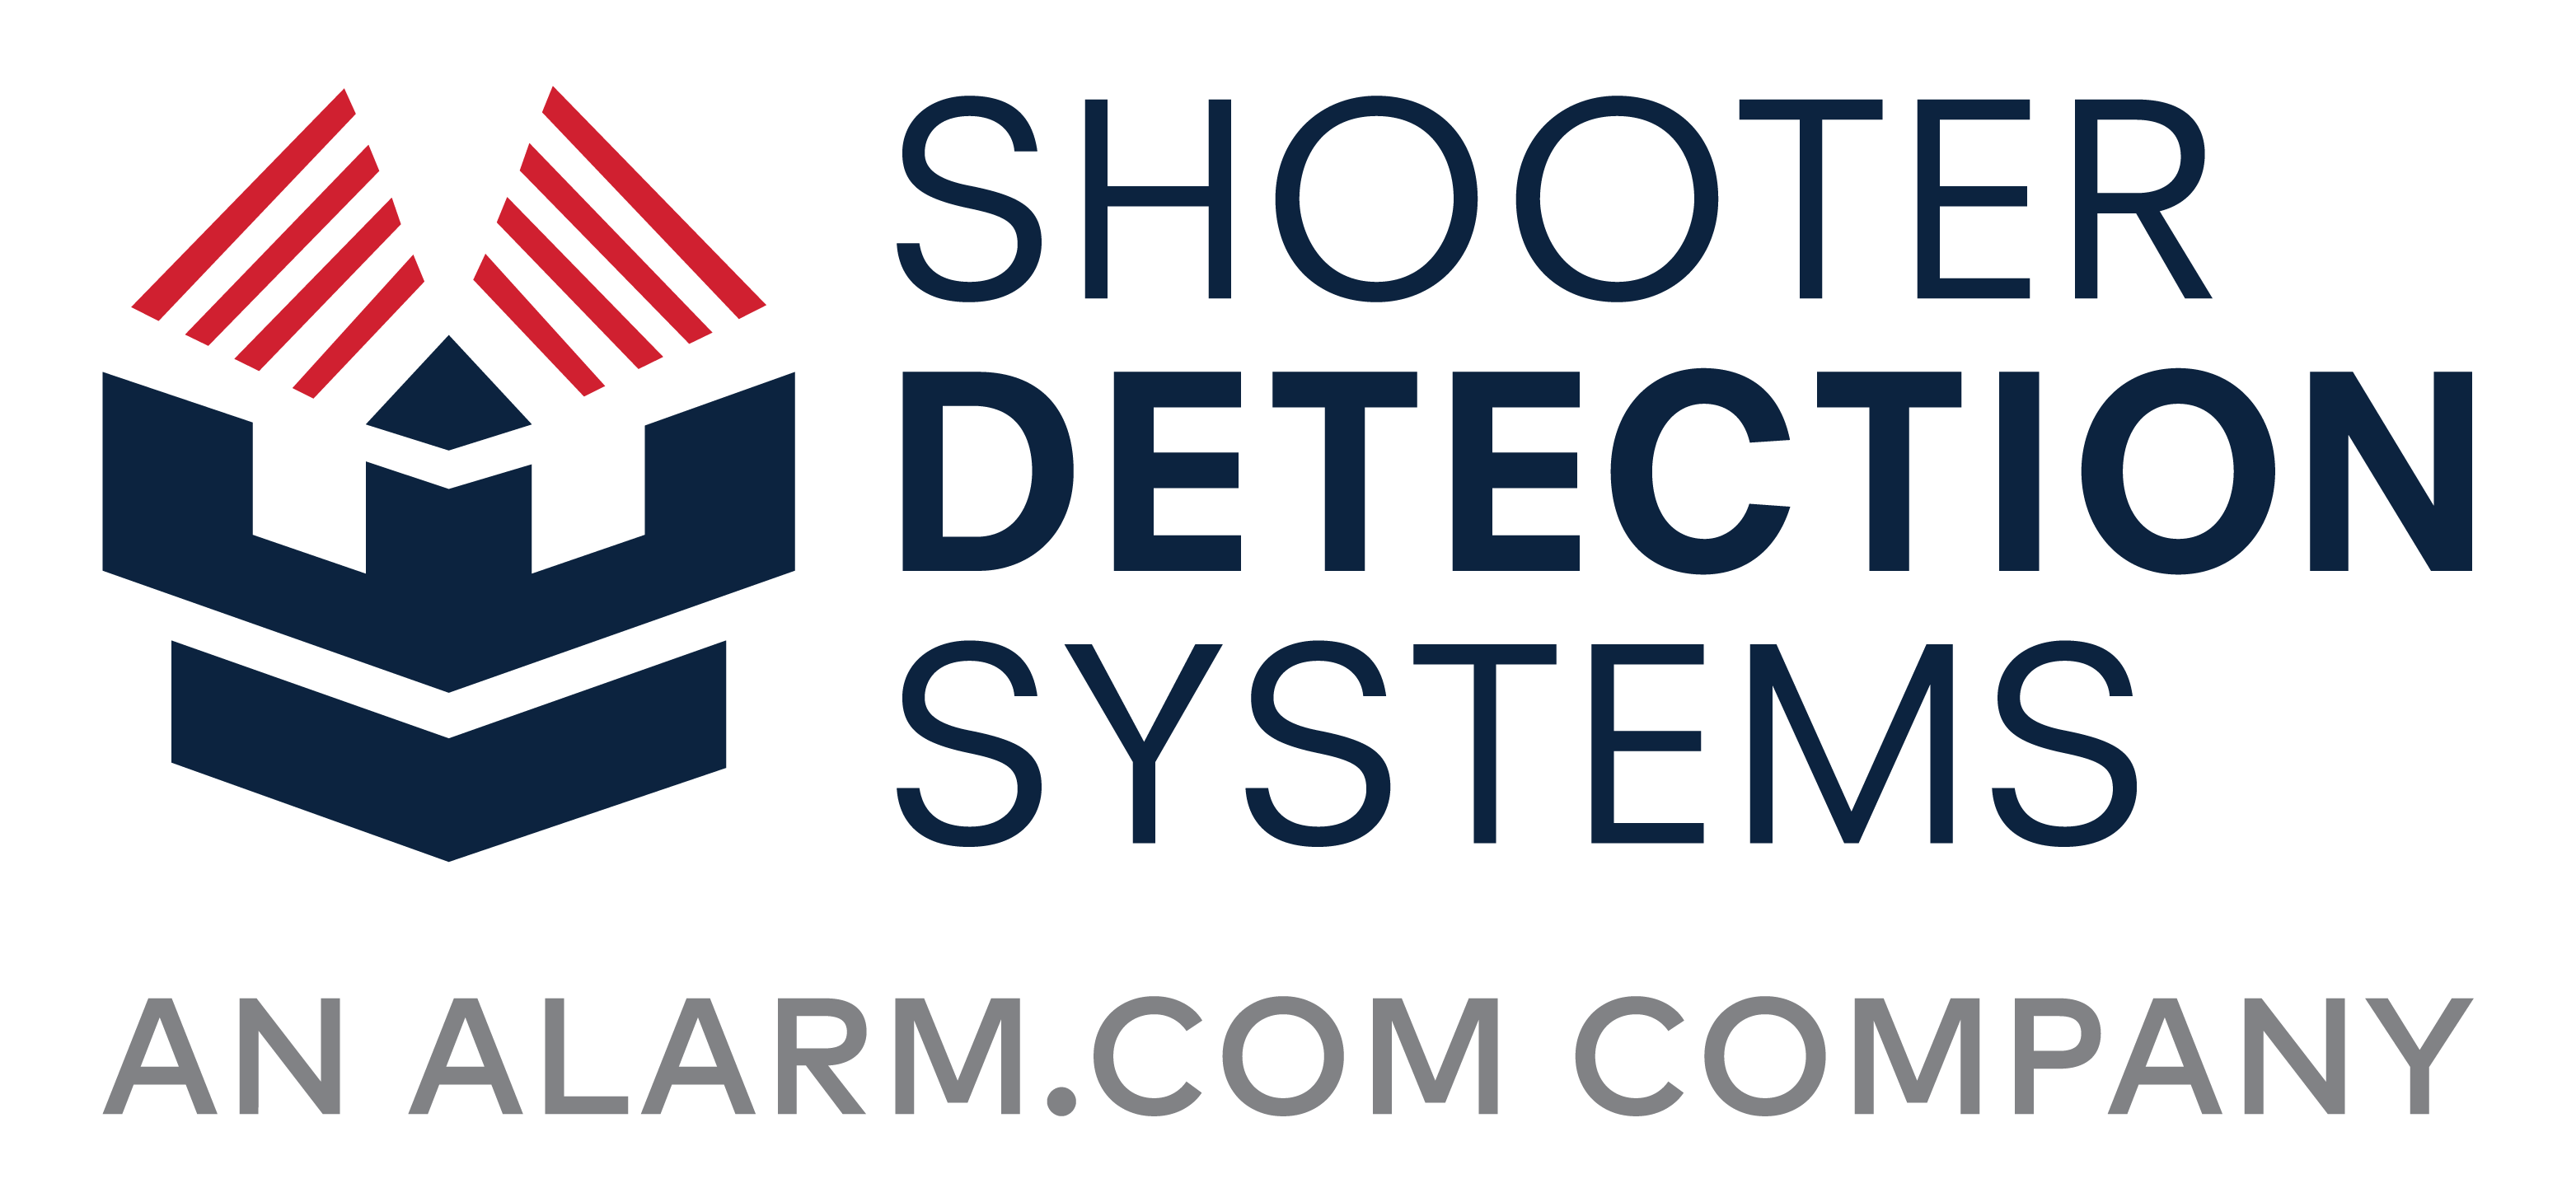 shooterdetectionsystems.com